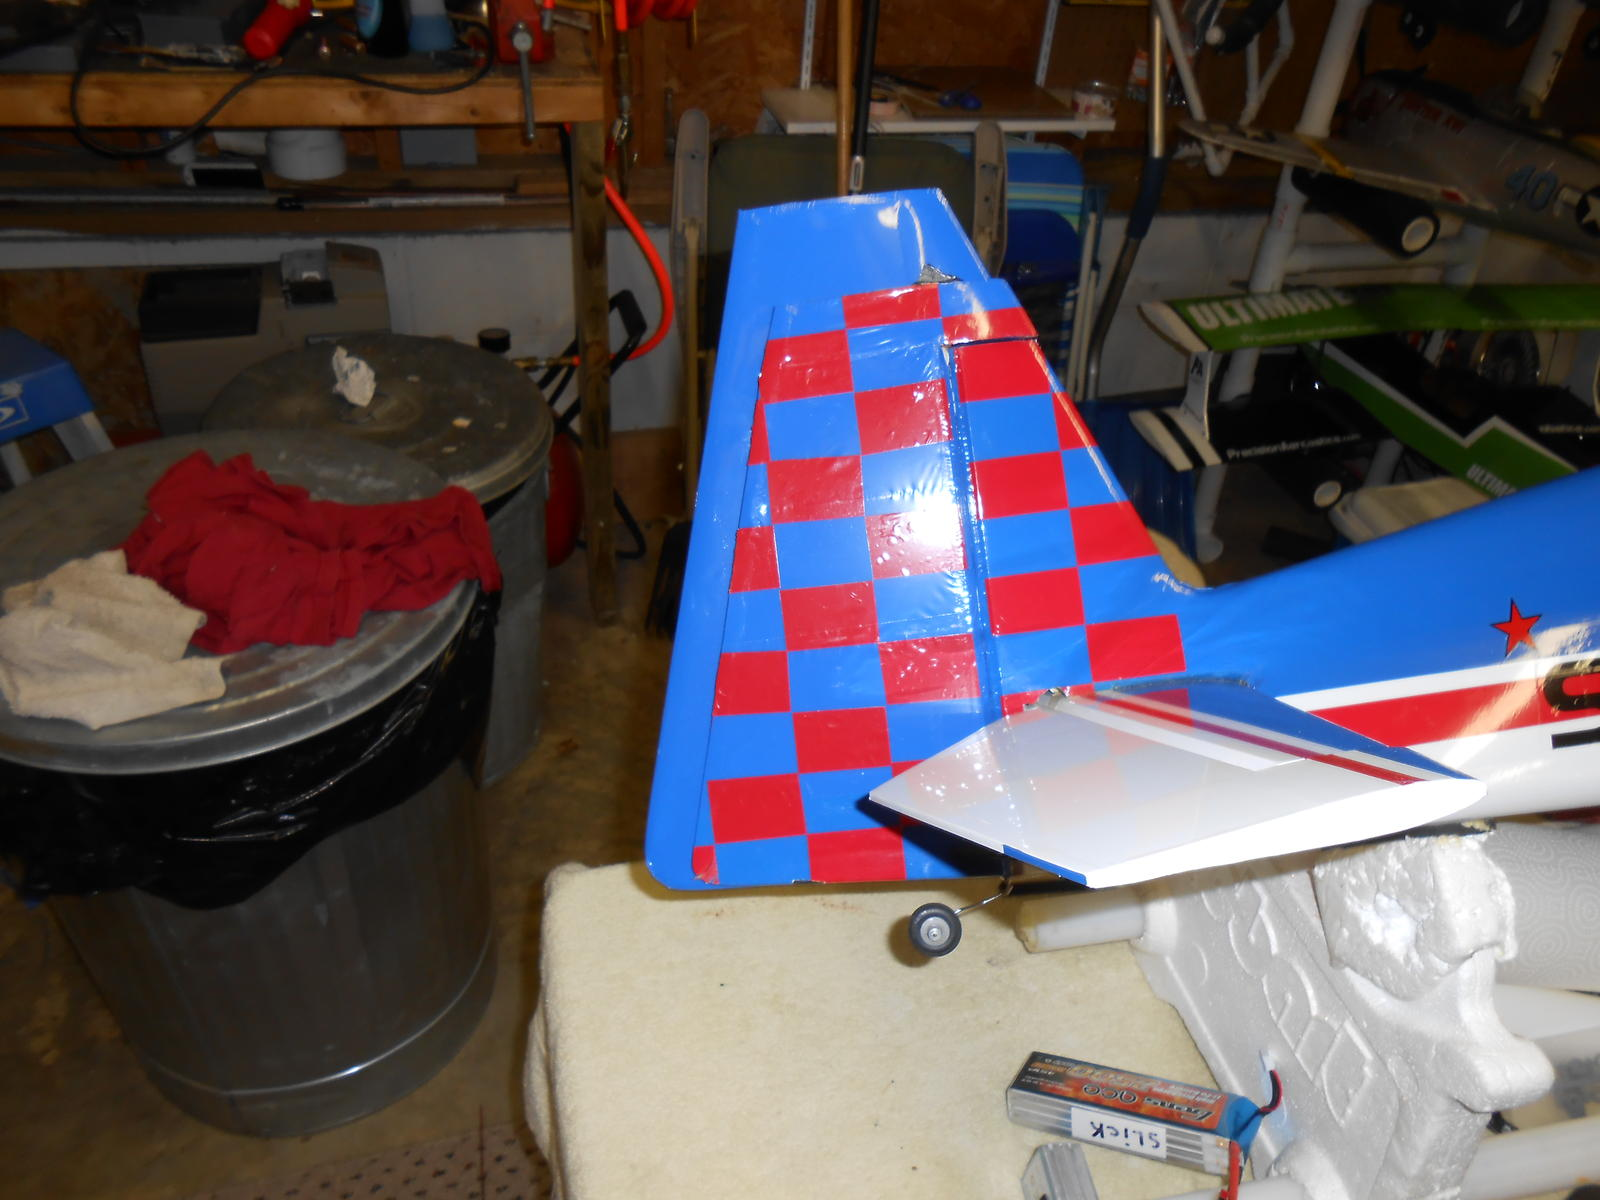 New rudder taped to the back of stock rudder